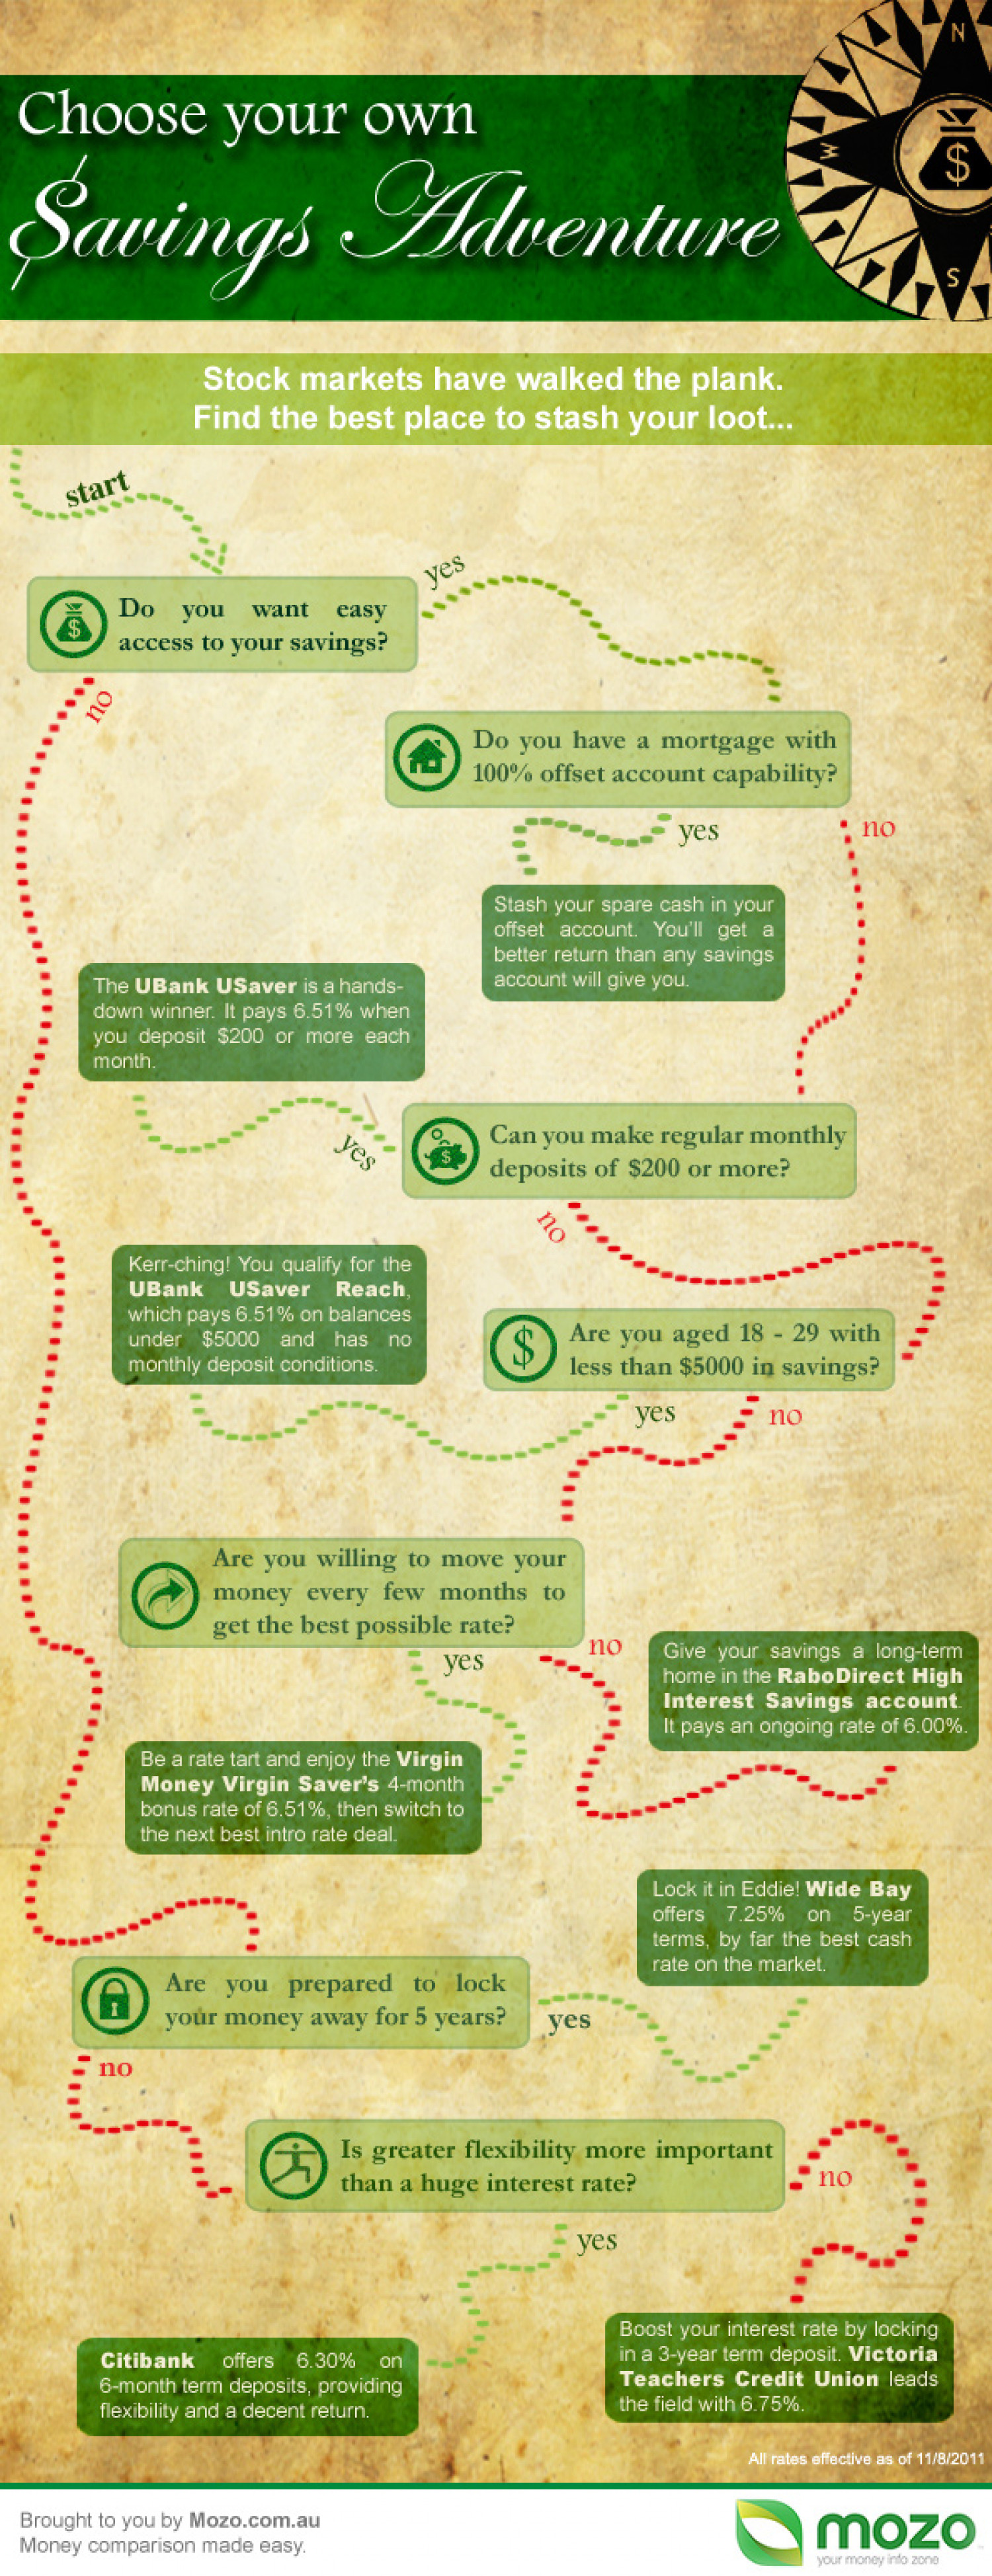 Choose Your Own Savings Account Adventure Infographic